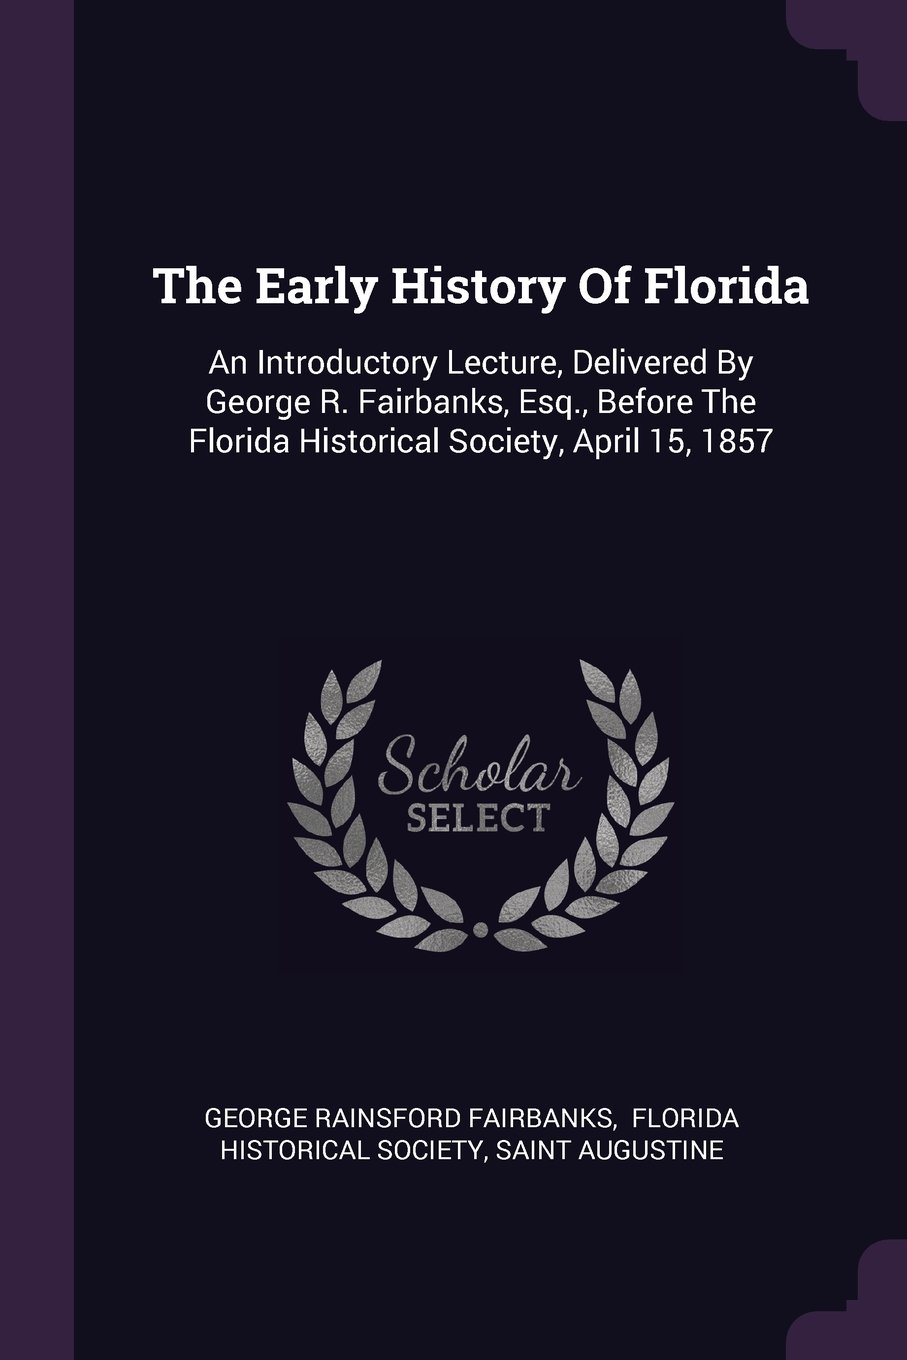 Download The Early History Of Florida: An Introductory Lecture, Delivered By George R. Fairbanks, Esq., Before The Florida Historical Society, April 15, 1857 PDF